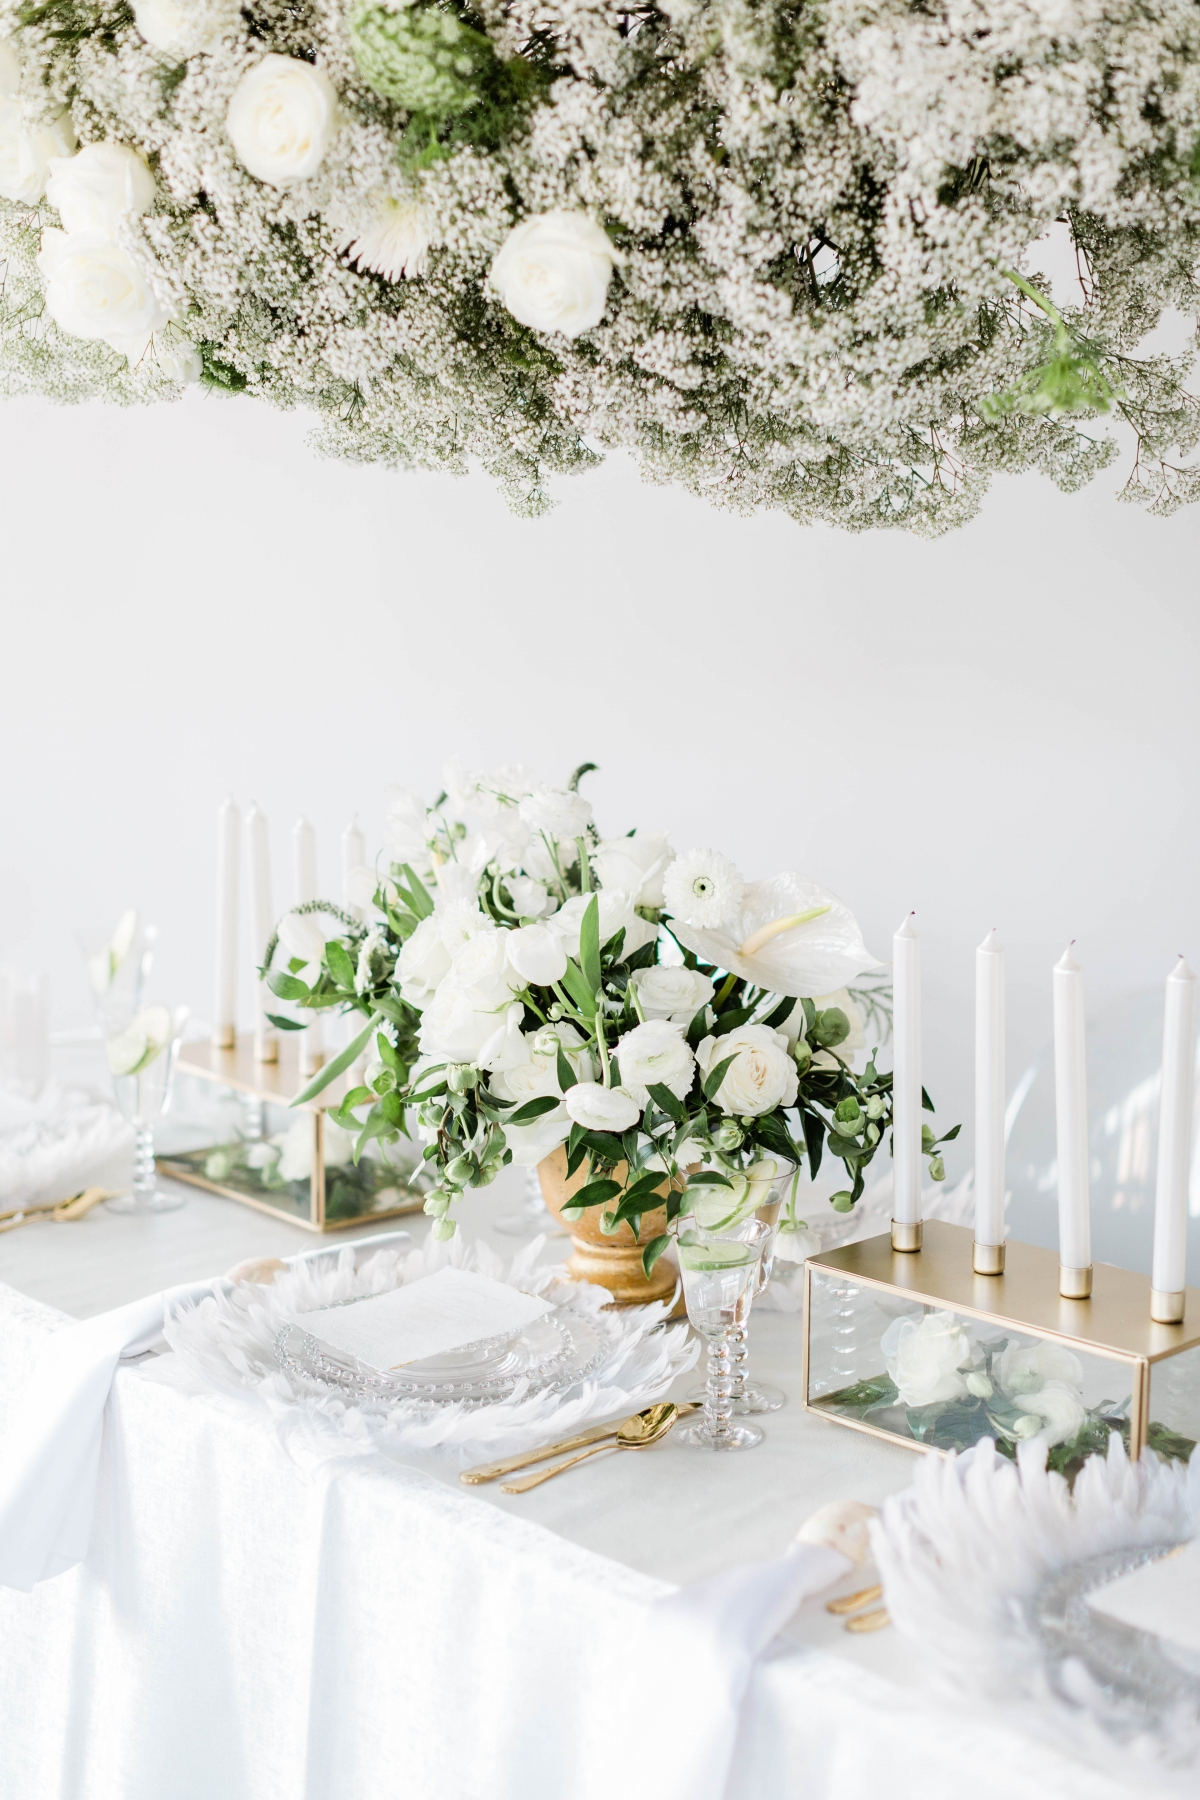 White and Green Baby's Breath Wedding Flowers